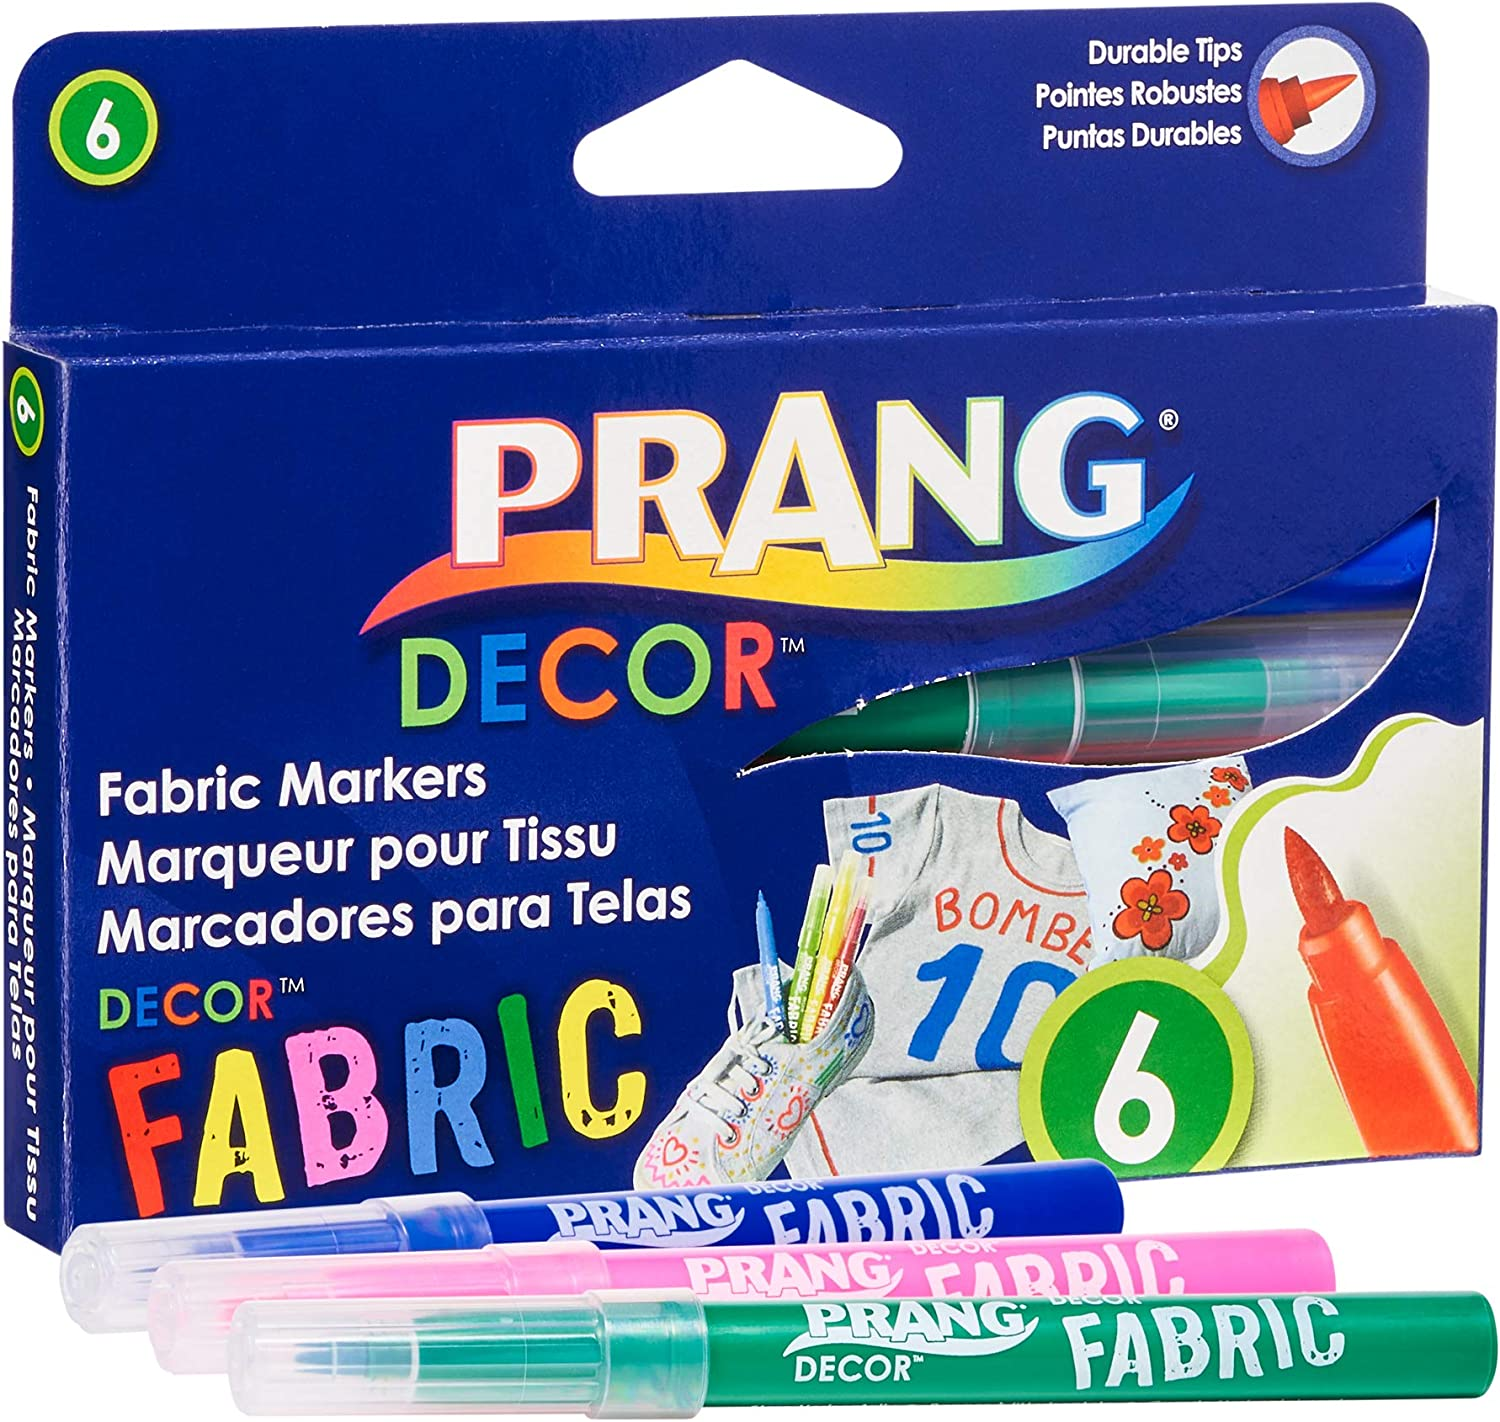 PRANG Decor Fabric Markers, Brush Tips, Permanent Ink, Non-Toxic, 6-Color Set (74106)